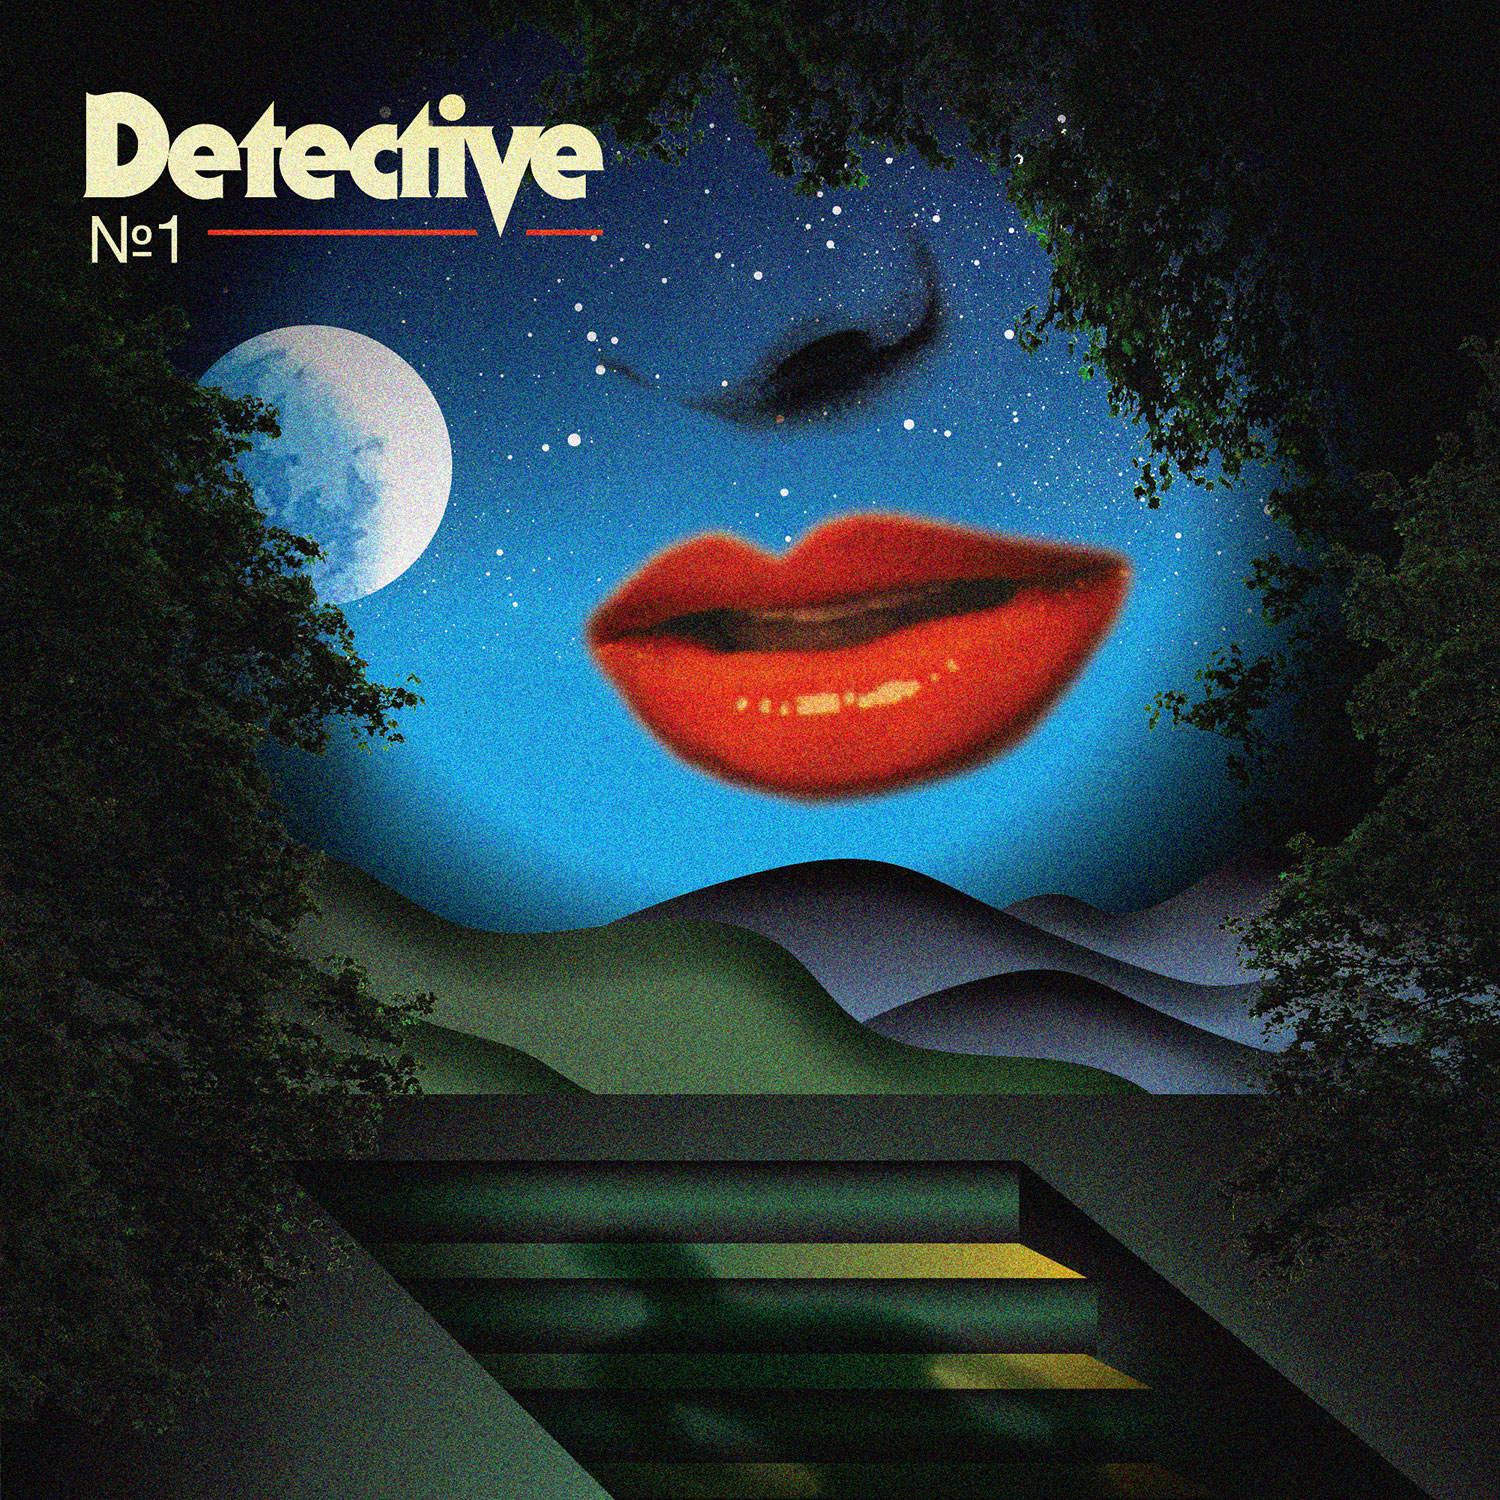 Detective - No. 1 - Stream our Debut Album NOW!Vinyl release - COMING SOON.